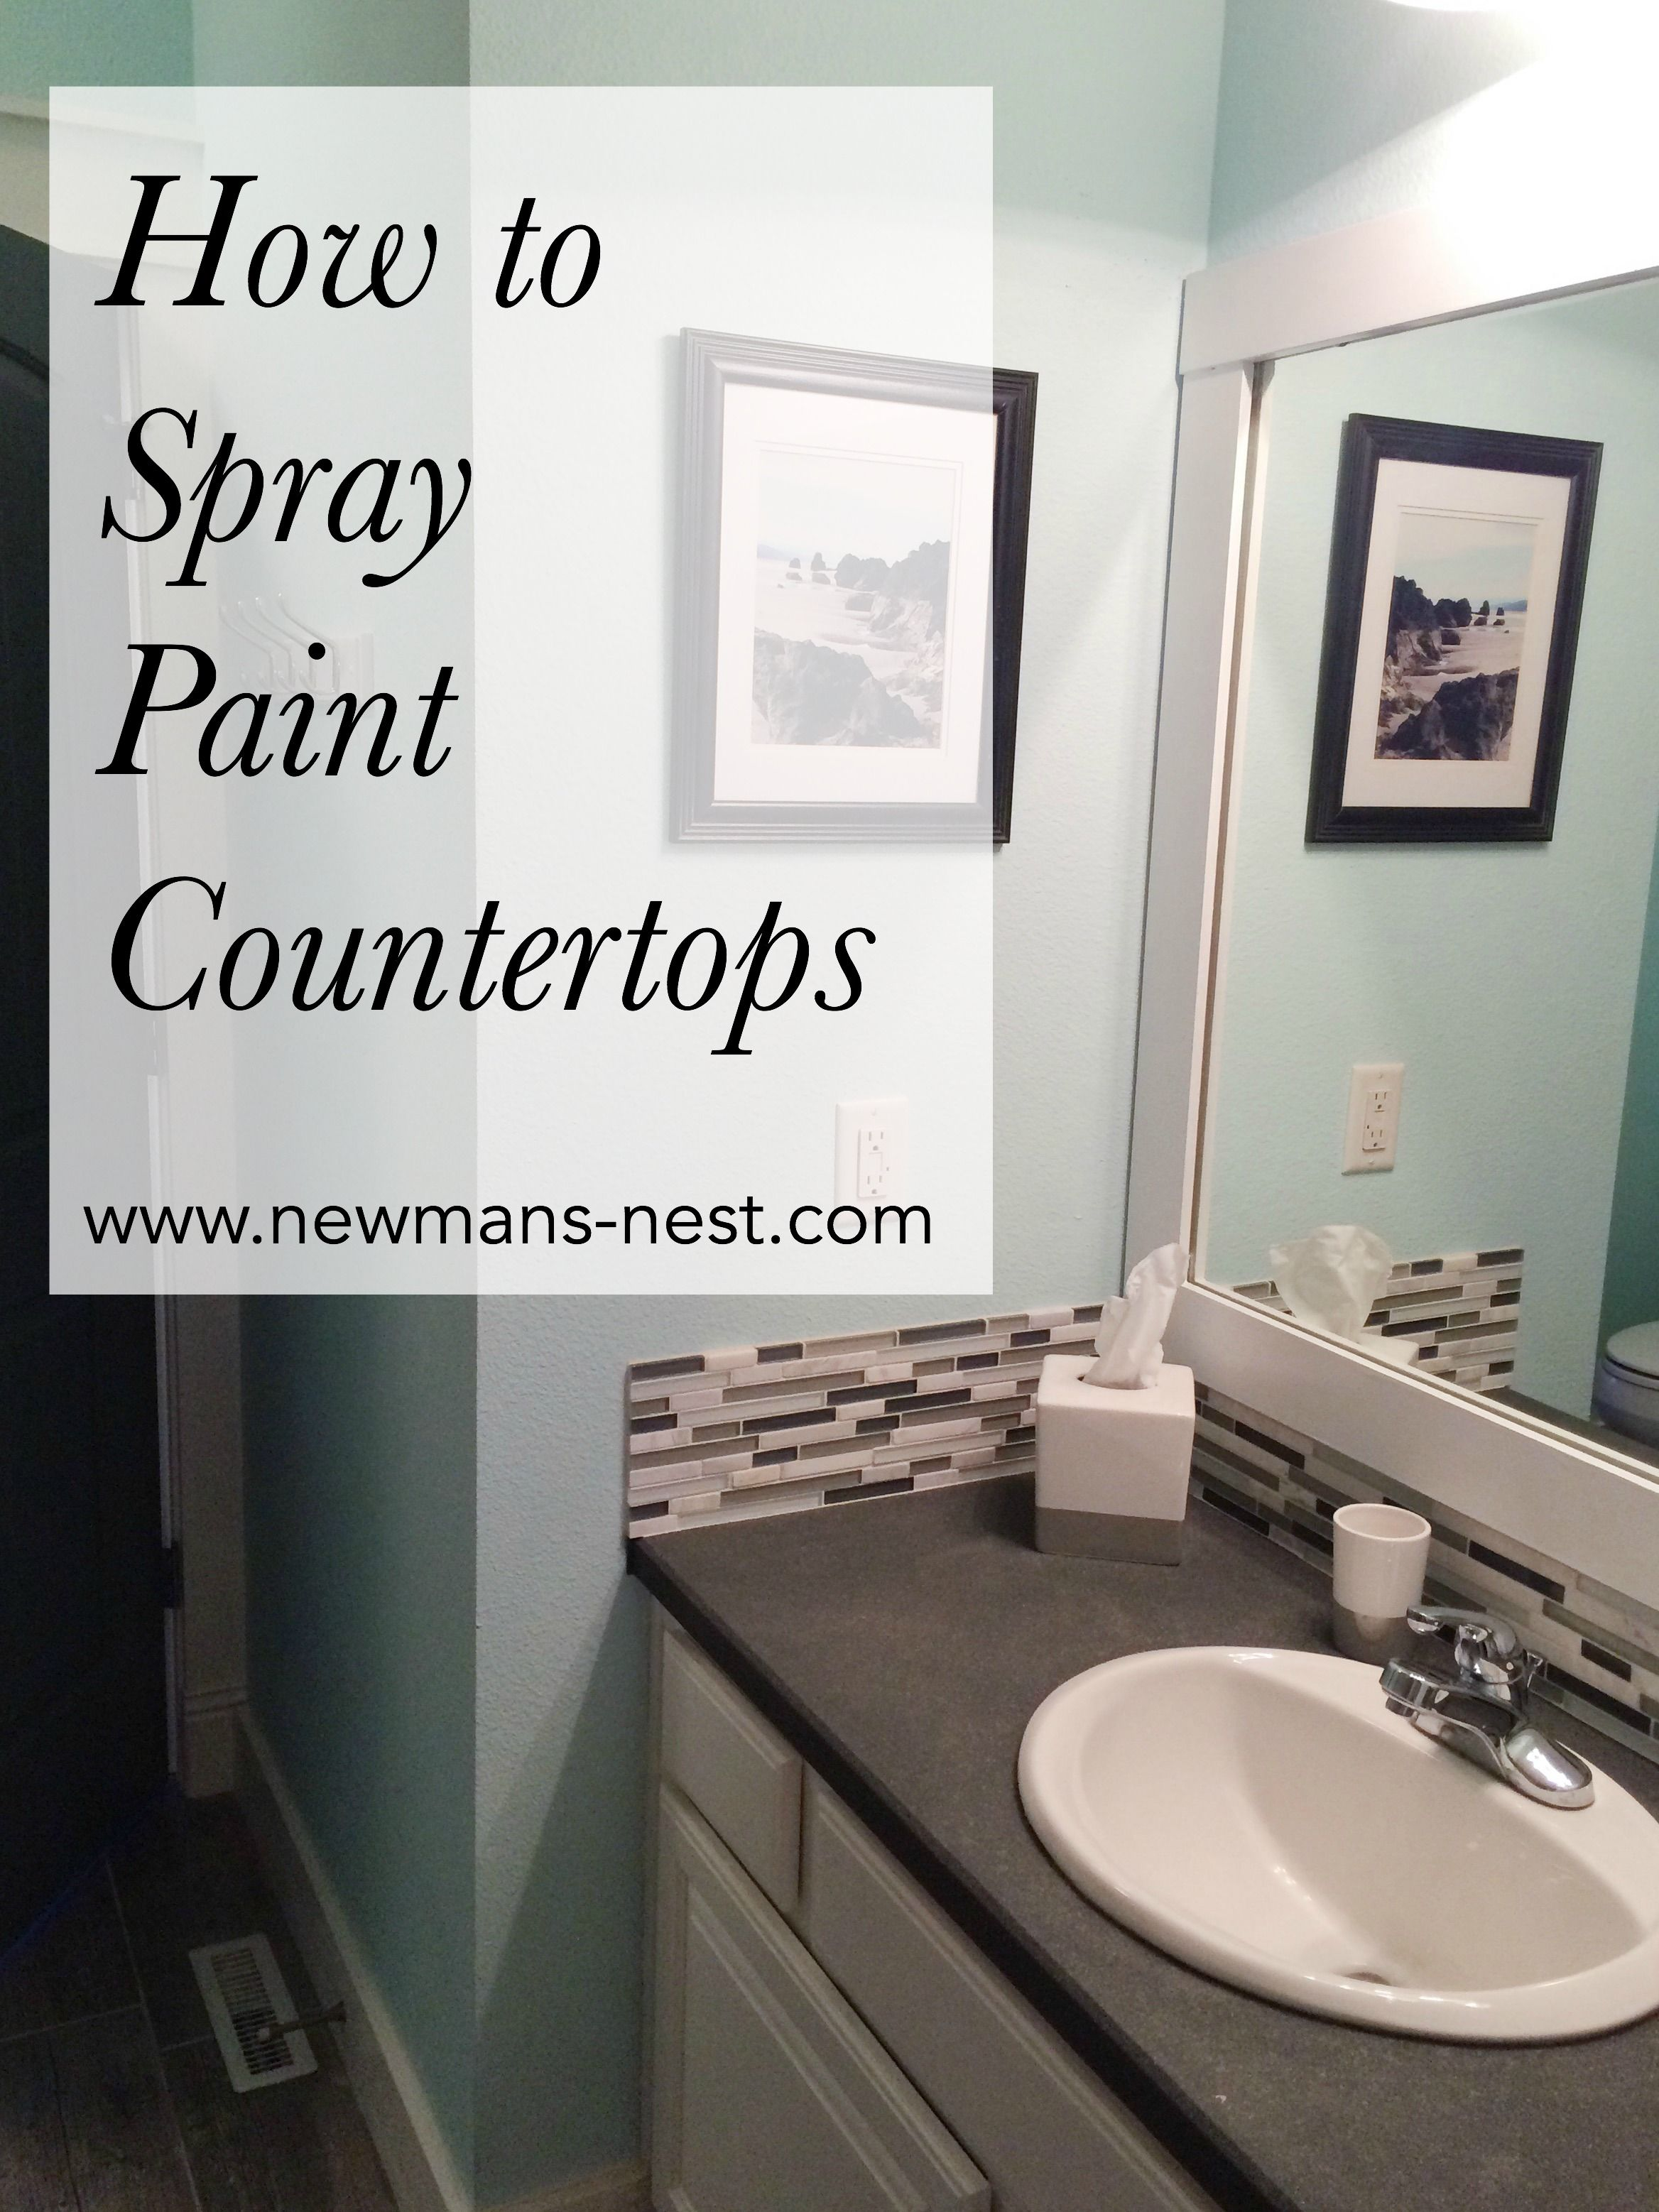 Spray Painted Countertops | DIY House | Pinterest | Countertop ...